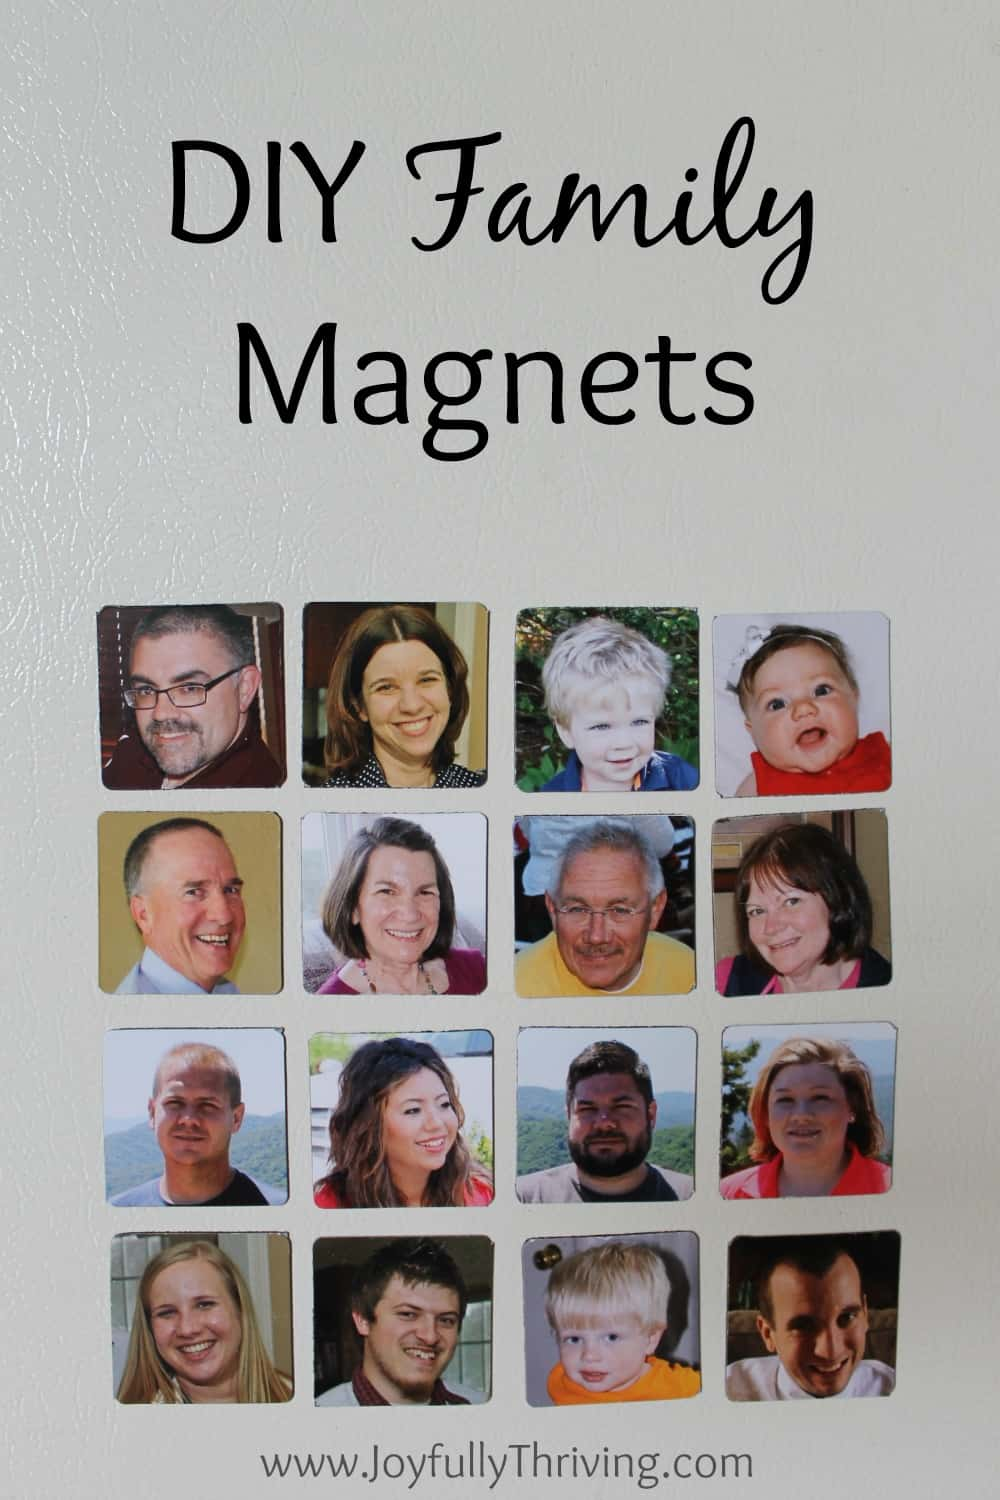 I absolutely LOVE this idea of making family magnets! What a great idea for preschoolers to help them learn family names, especially if they live far away!